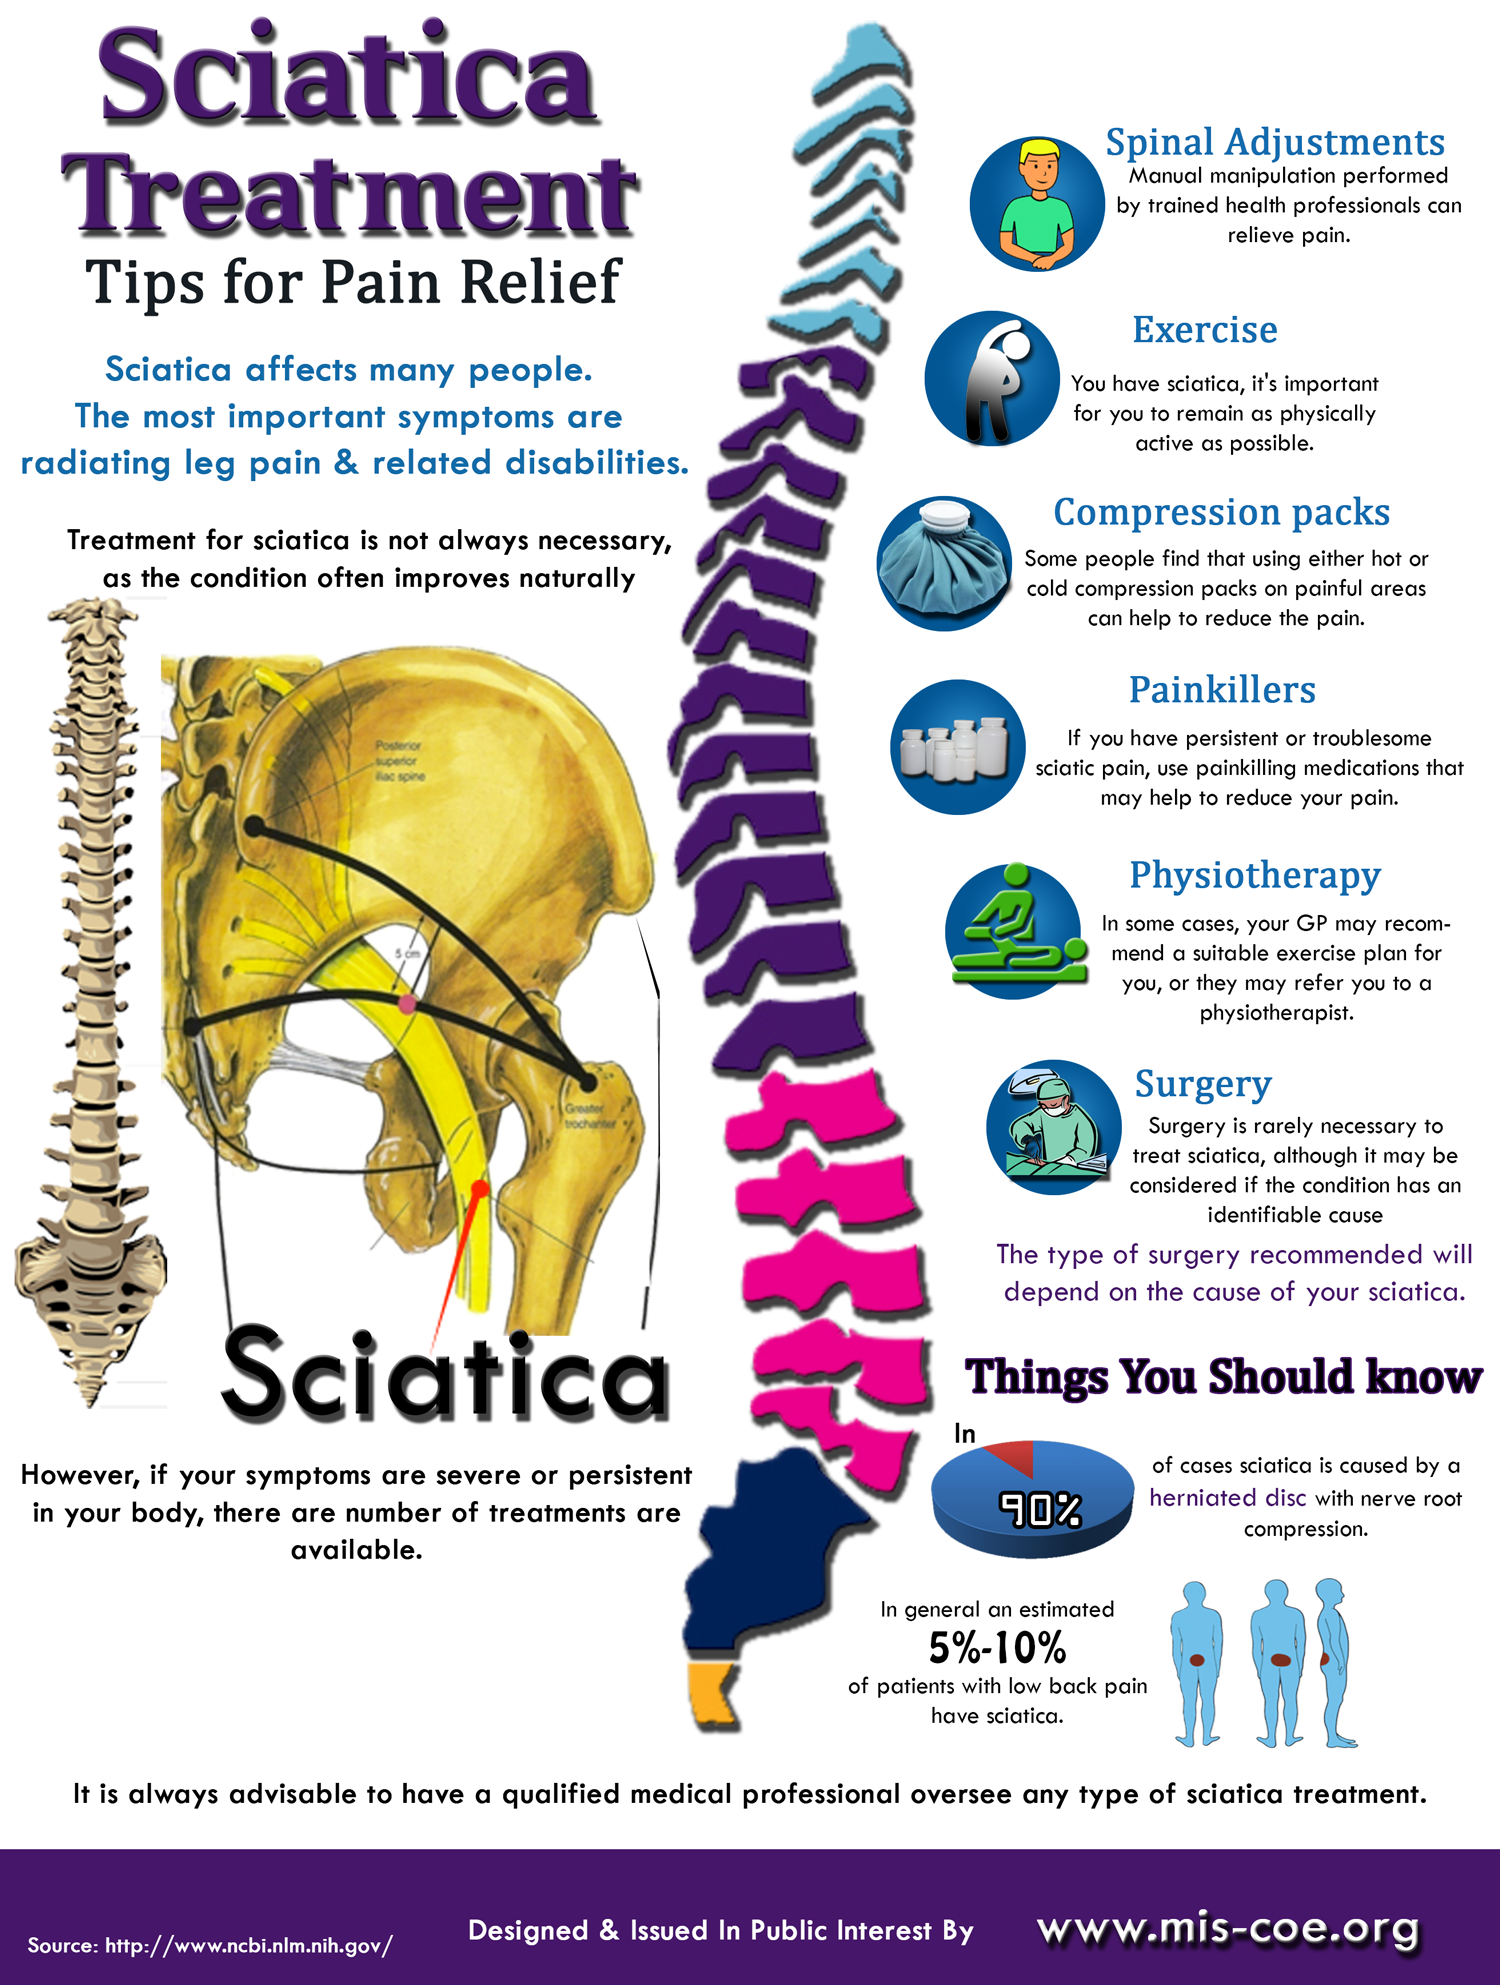 sciatica – treatment tips for pain relief | visual.ly